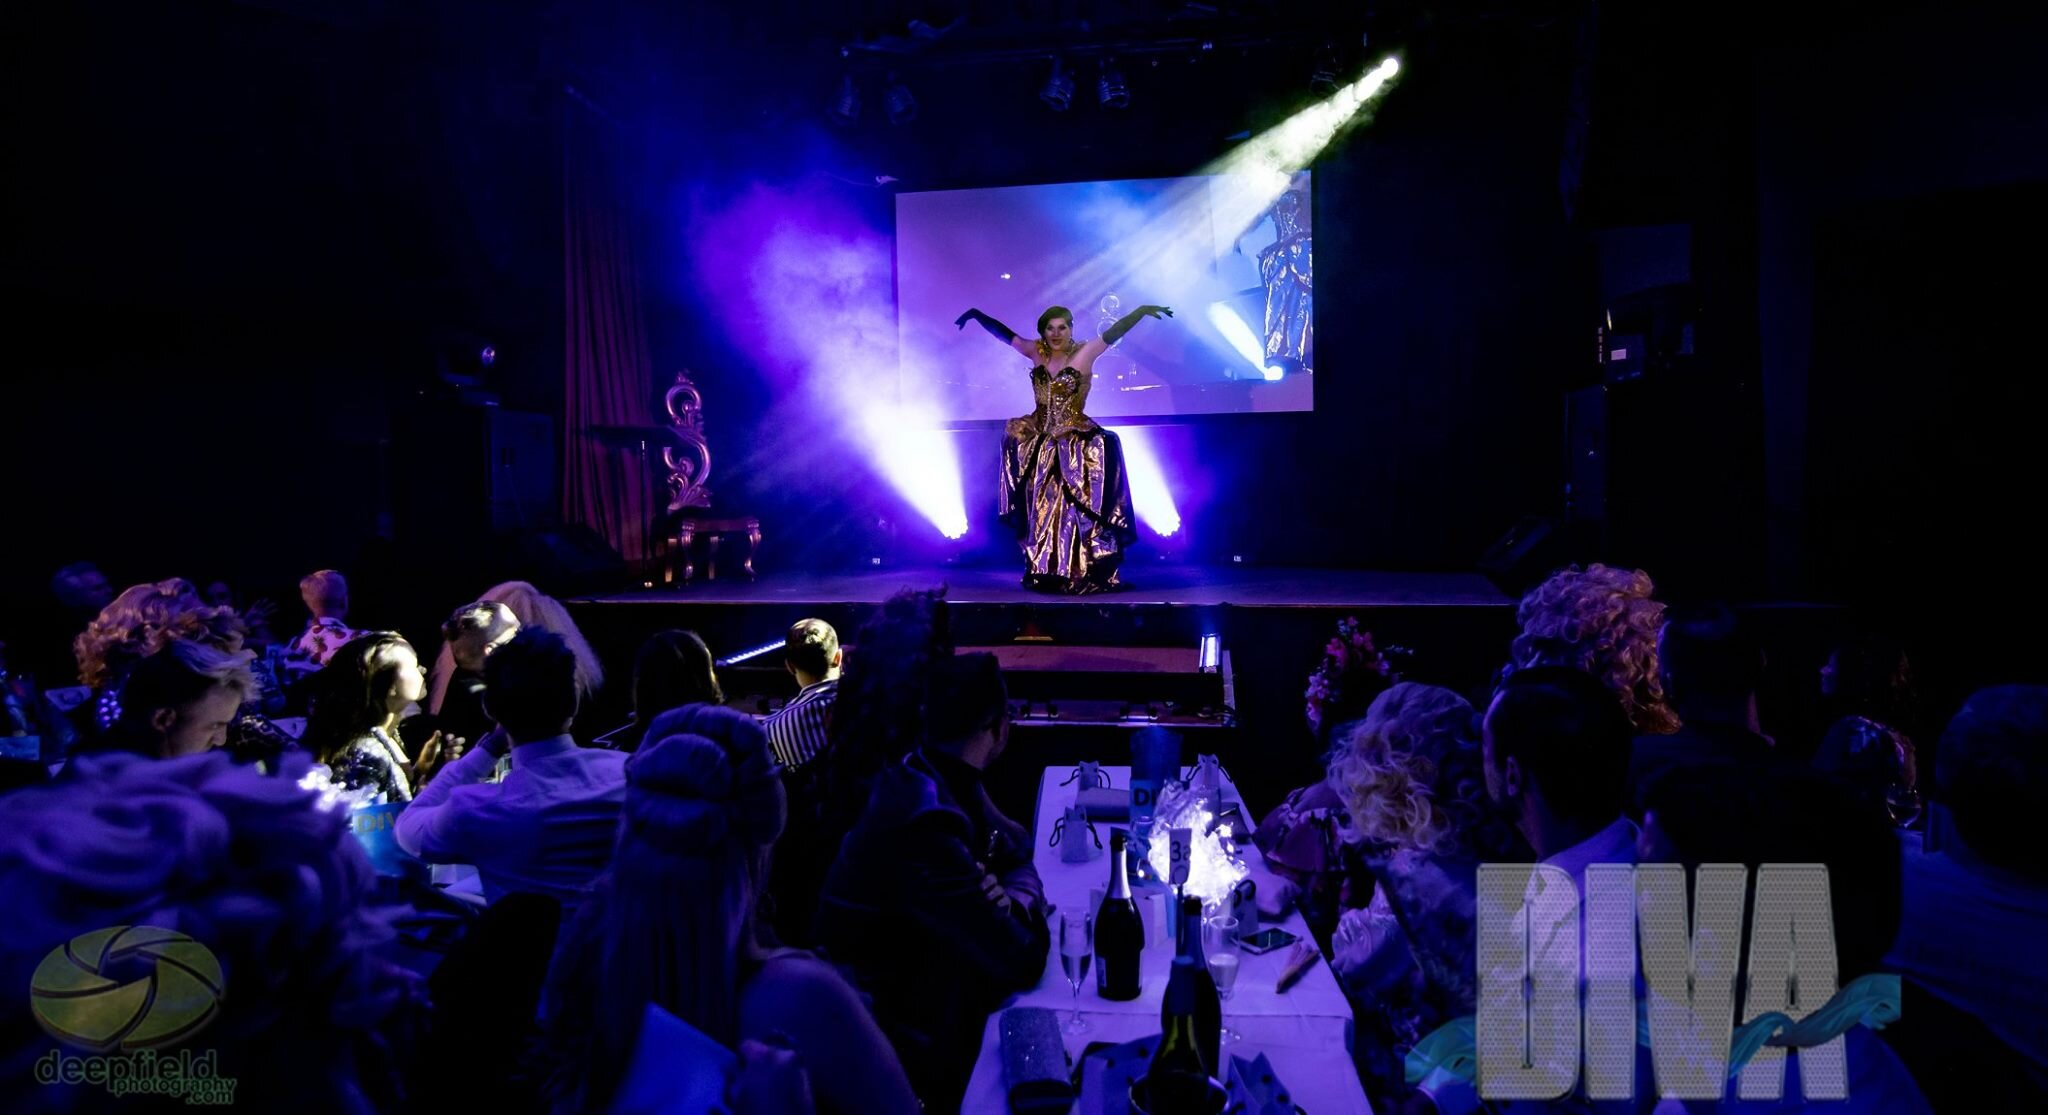 masqueerade-arq-sydney-show-of-the-year-favourite-charisma-belle-sia-tequila-coco-jumbo-diva-awards-sydney-drag-queen-royalty-best-hire-drag-race-australia-1.jpg